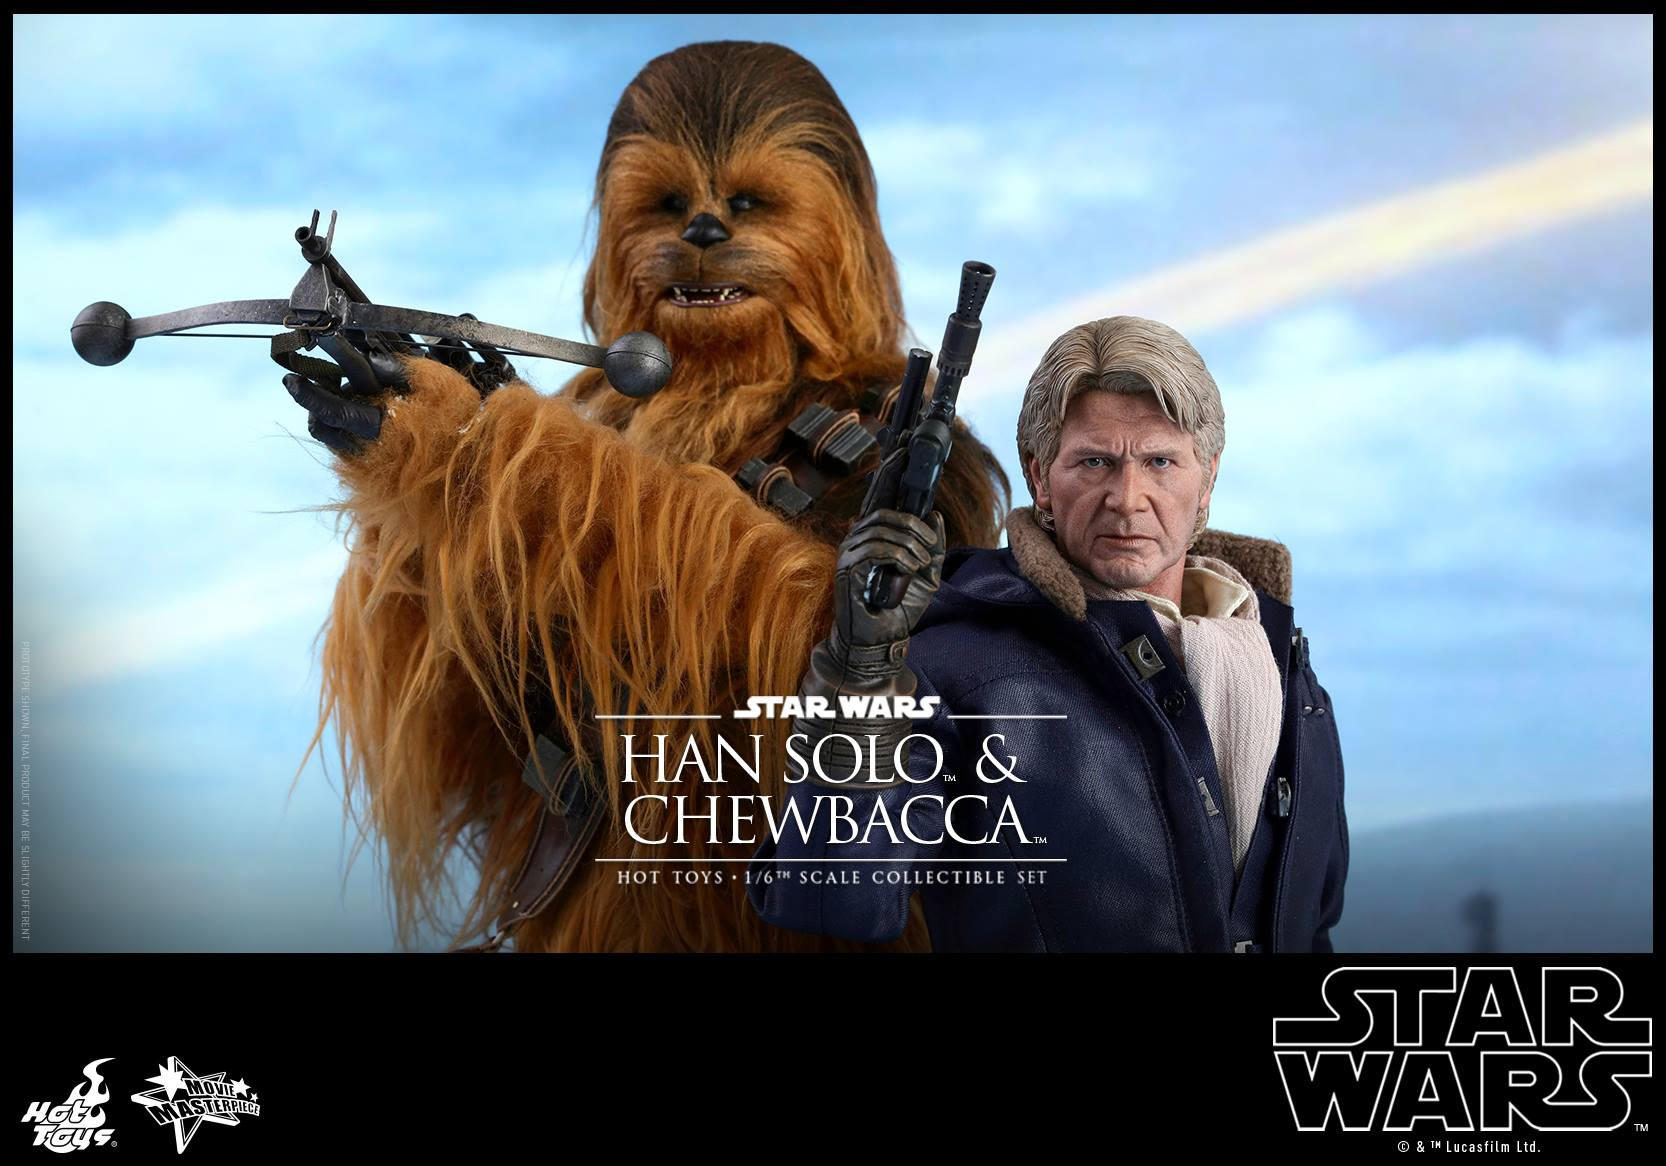 Hot Toys MMS376 STAR WARS: THE FORCE AWAKENS - HAN SOLO & CHEWBACCA